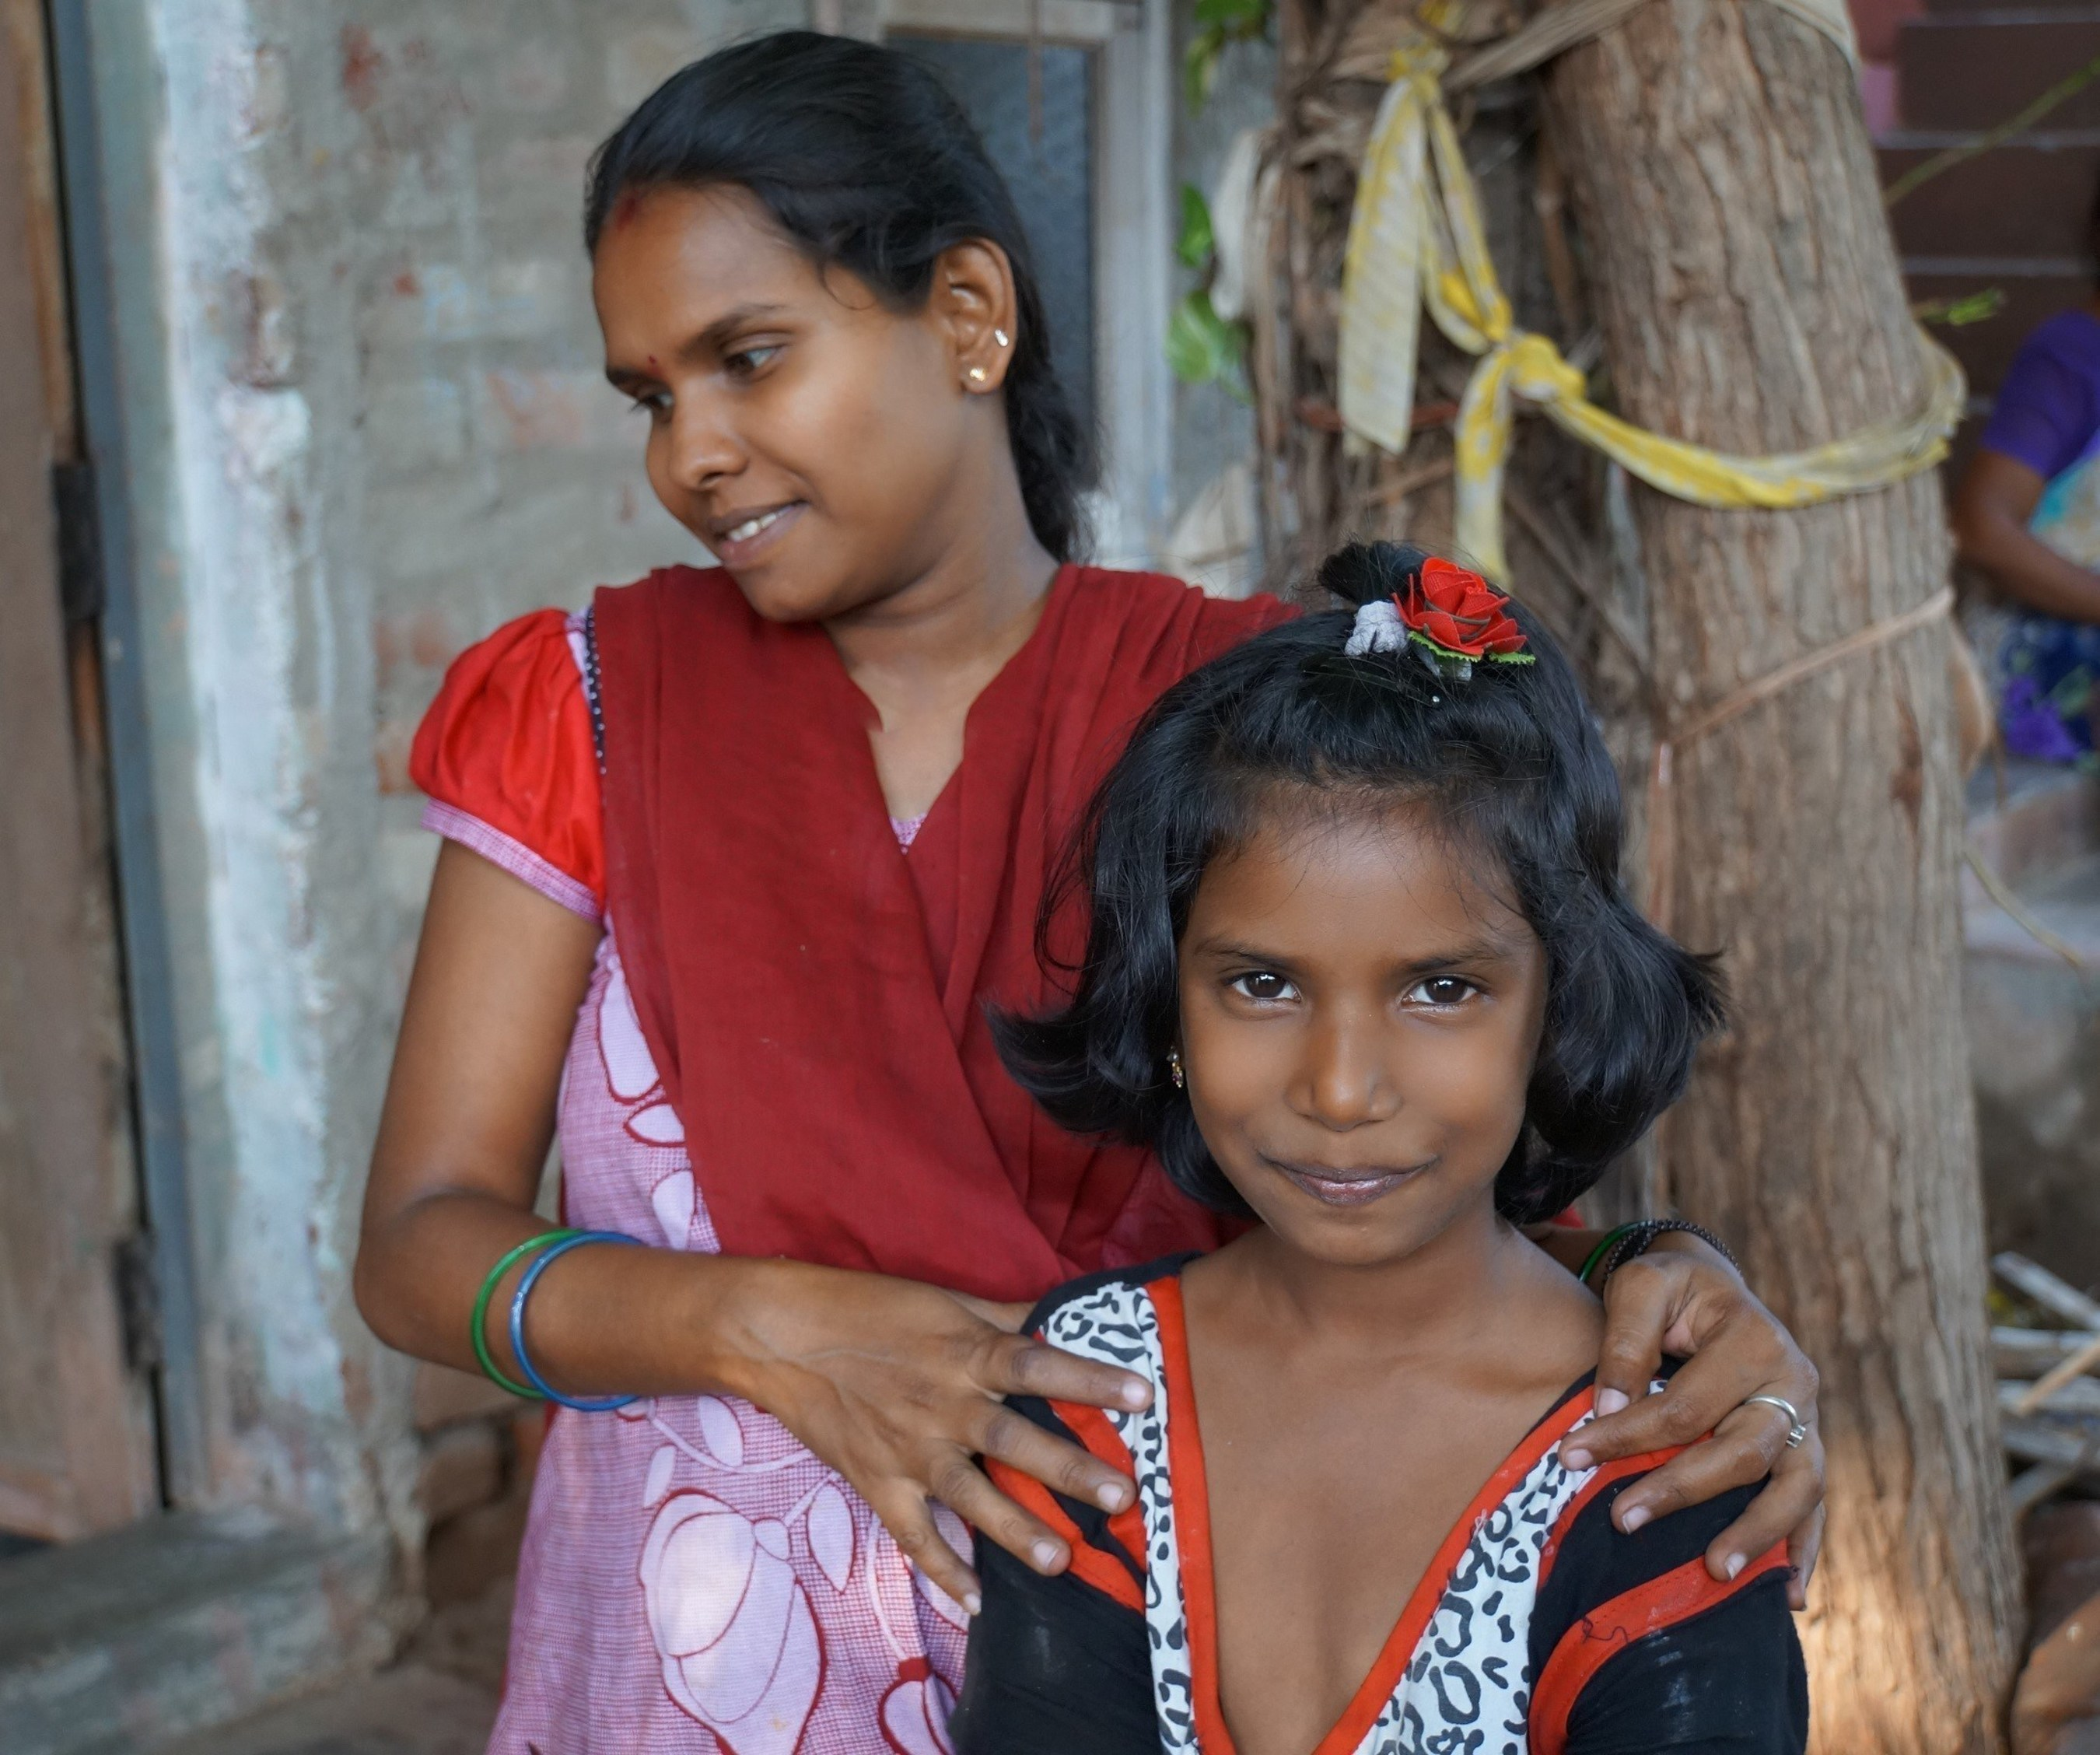 Mothers around the world dream of a better future for their daughters. Their greatest wish is to see their children finish school. But often, for want of a few dollars, this dream is out of reach. WomenStrong International's #SponsorHerDream campaign helps provide the resources needed to keep girls in school.